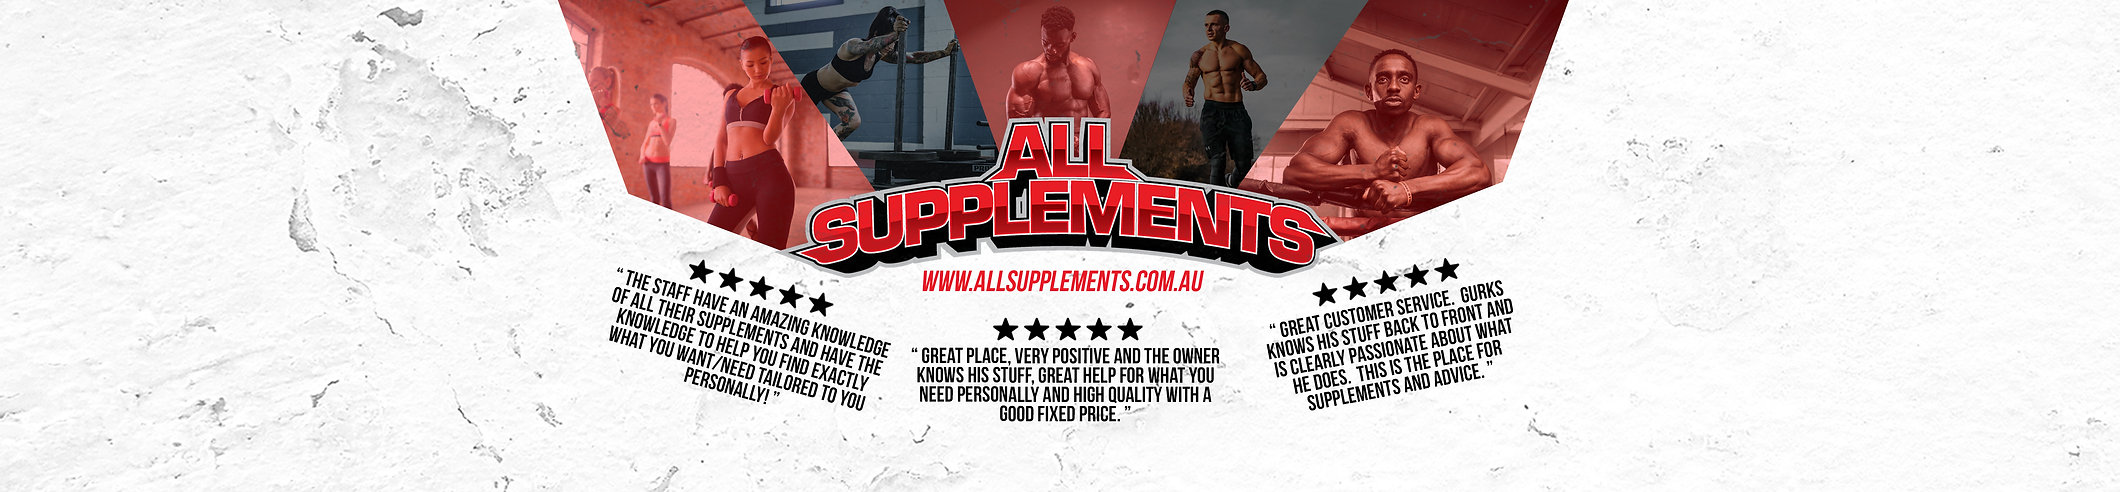 All-supps---Banner-V2.jpg